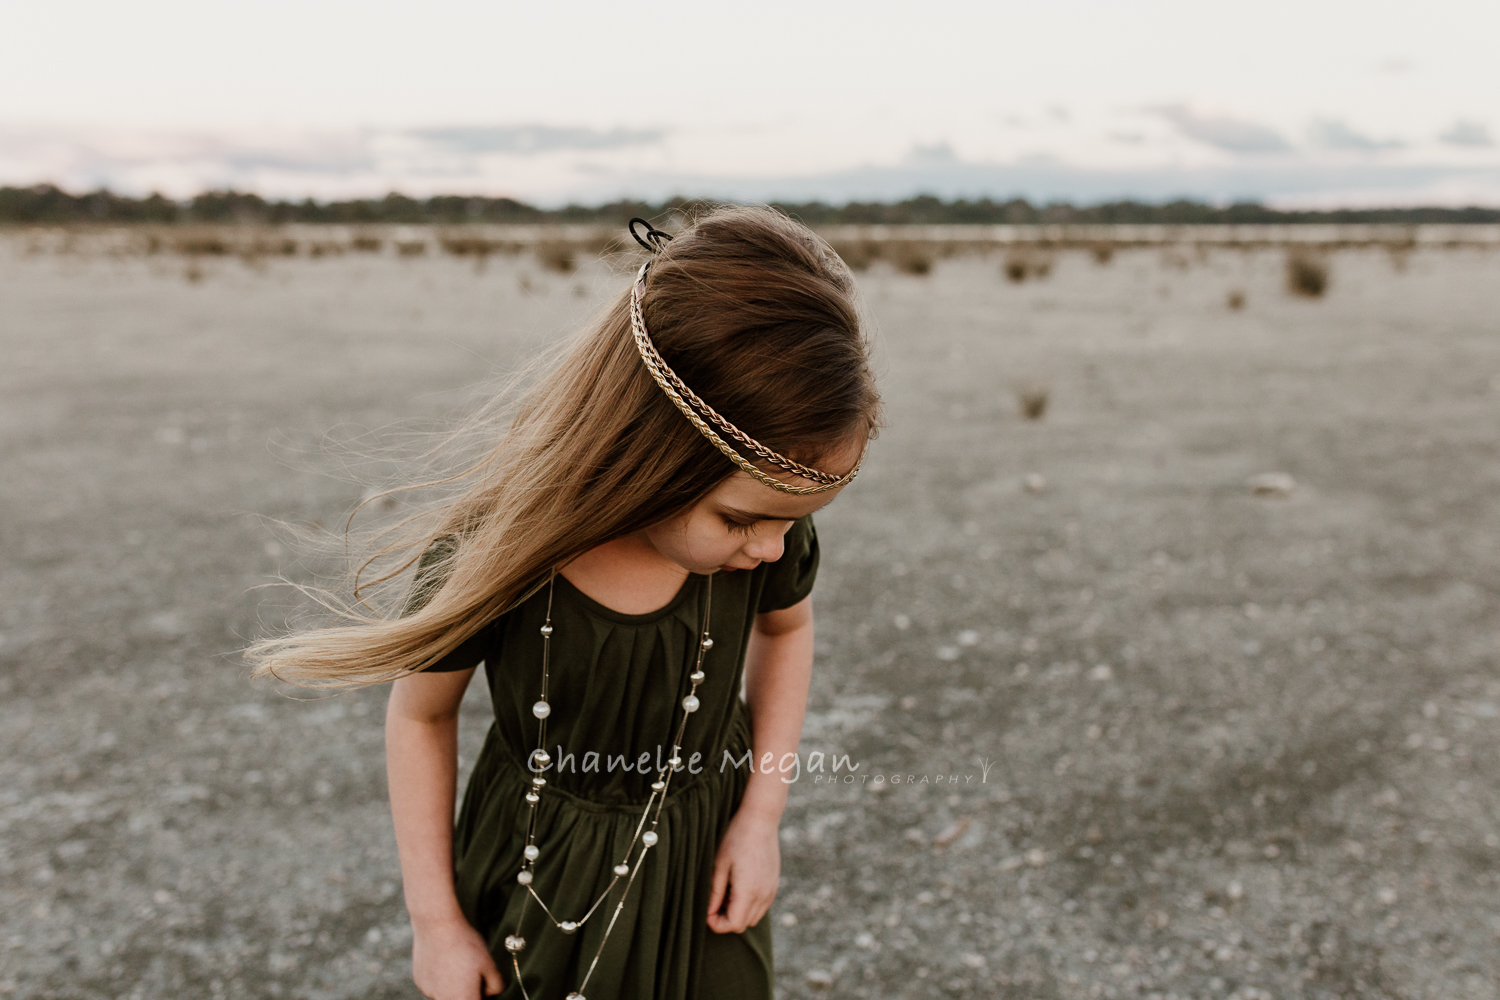 Natural and candid childhood photographs by Chanelle Megan Photography in Perth